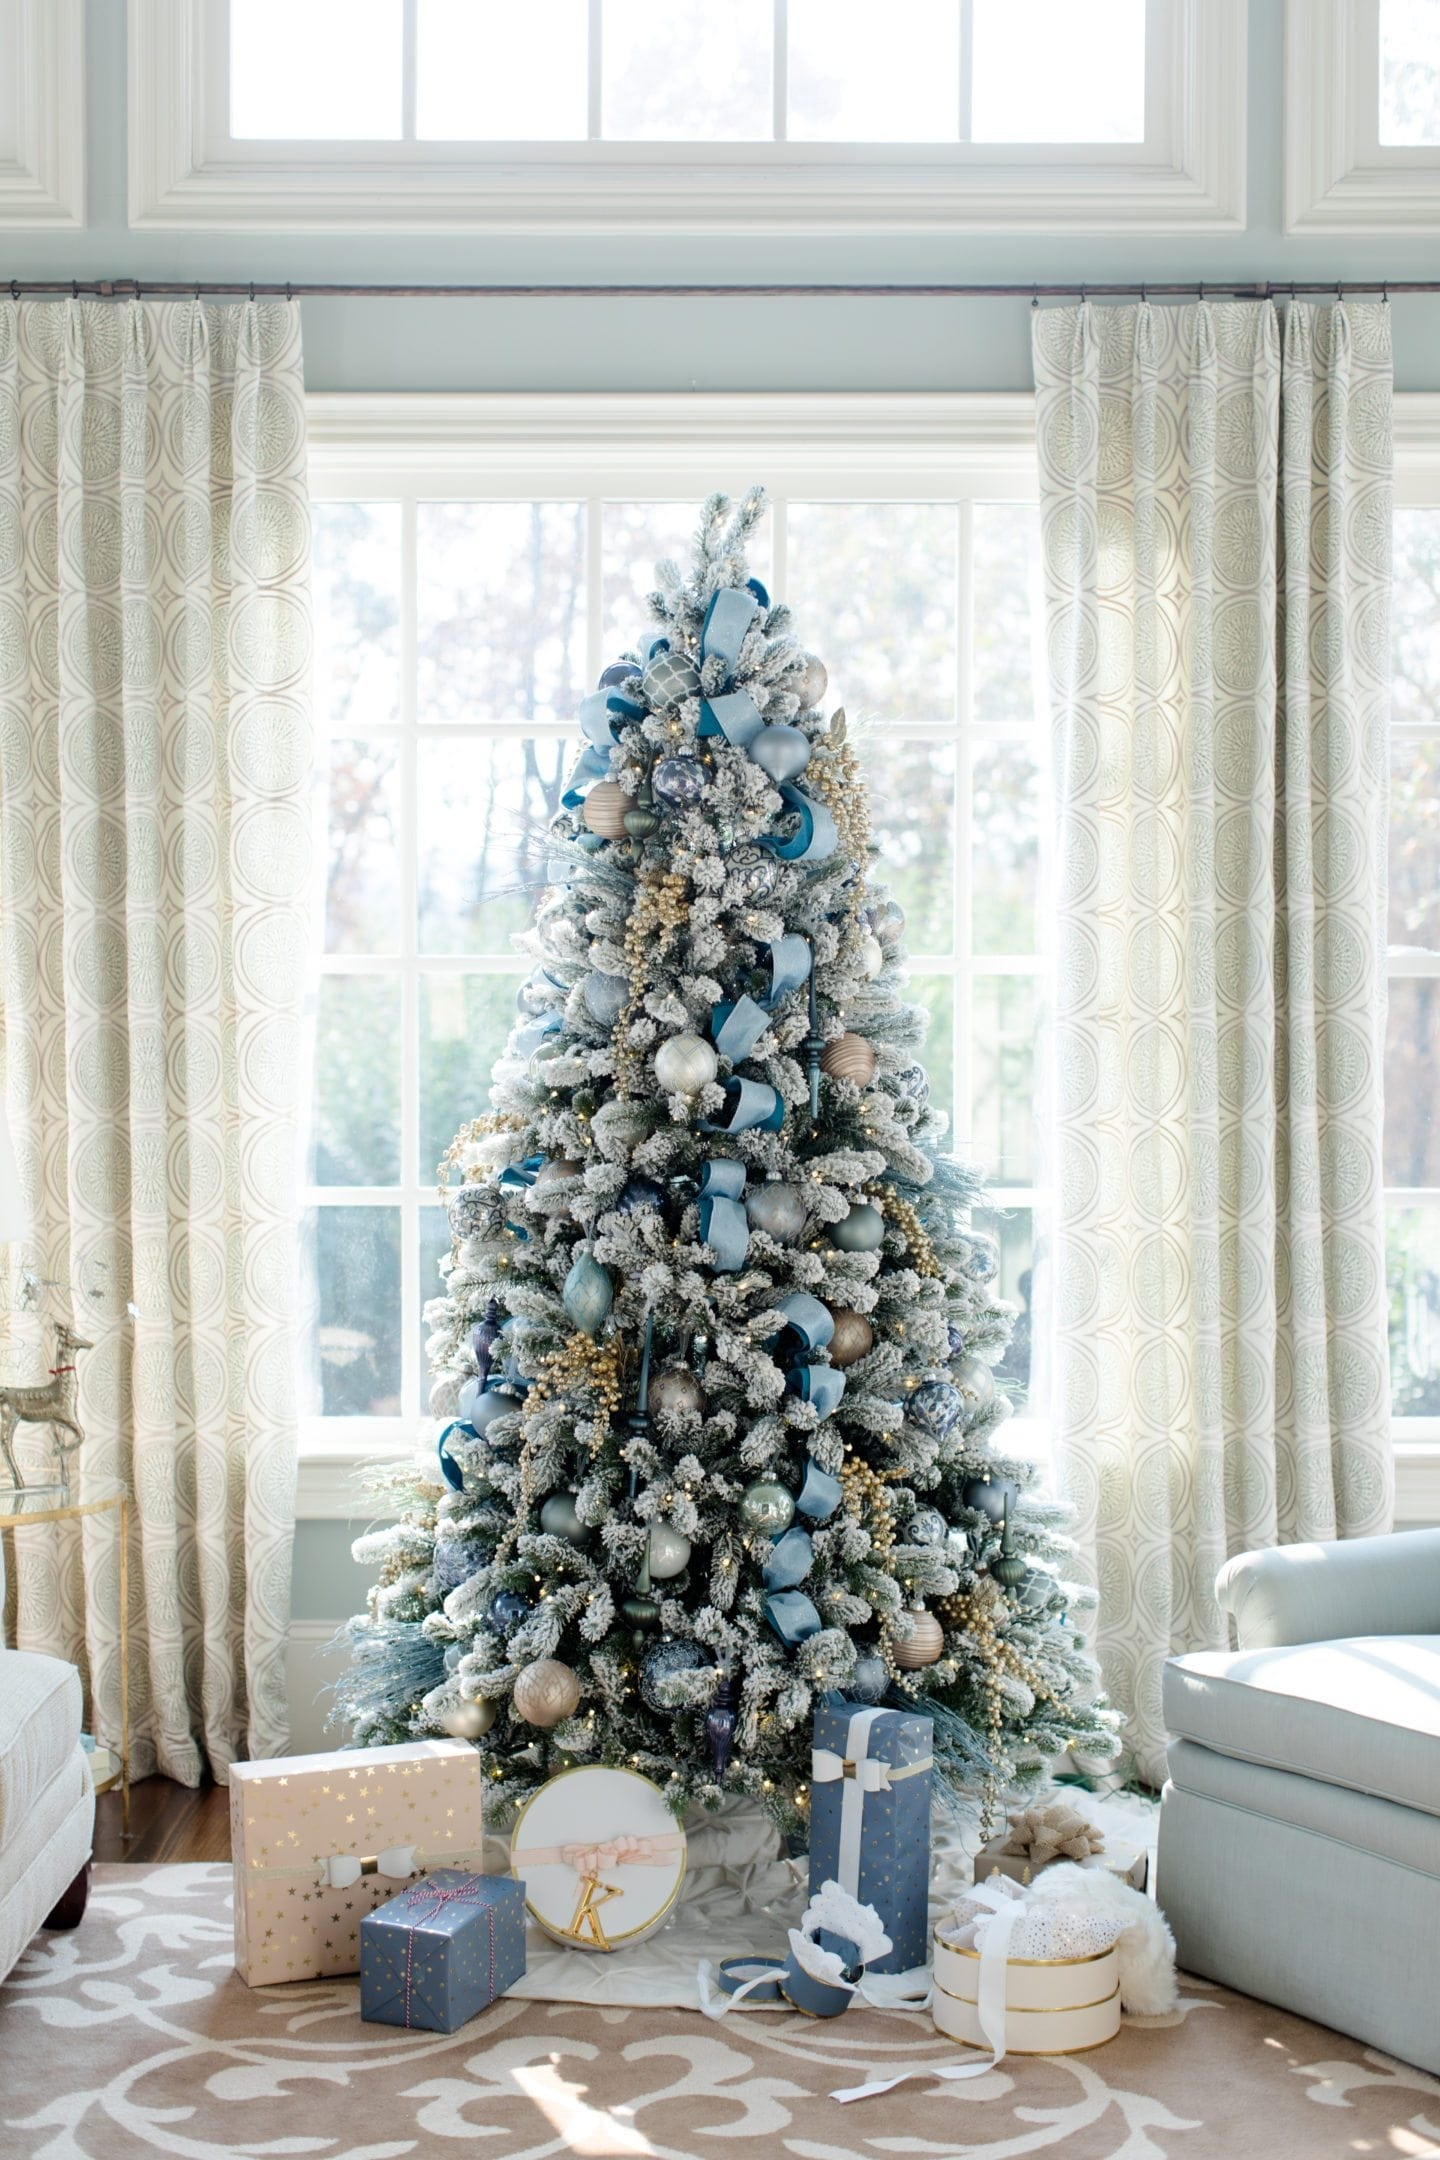 flocked christmas tree with blue glass ornaments and blue ribbon and presents below it